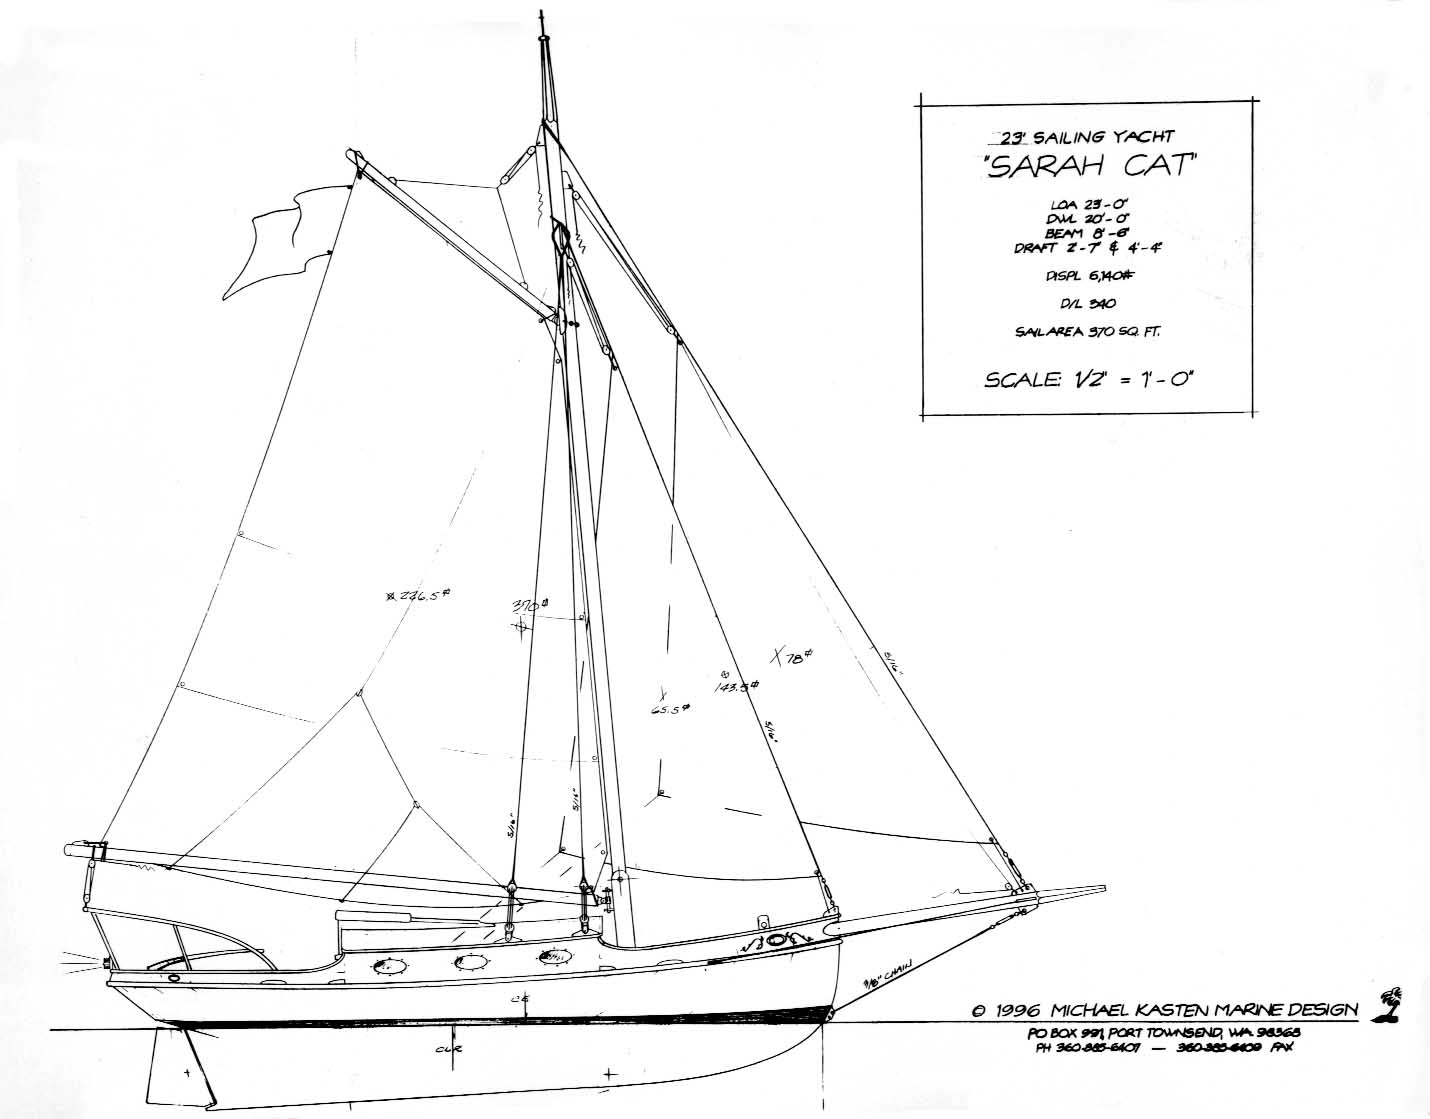 The 23' Cutter - SARAH CAT